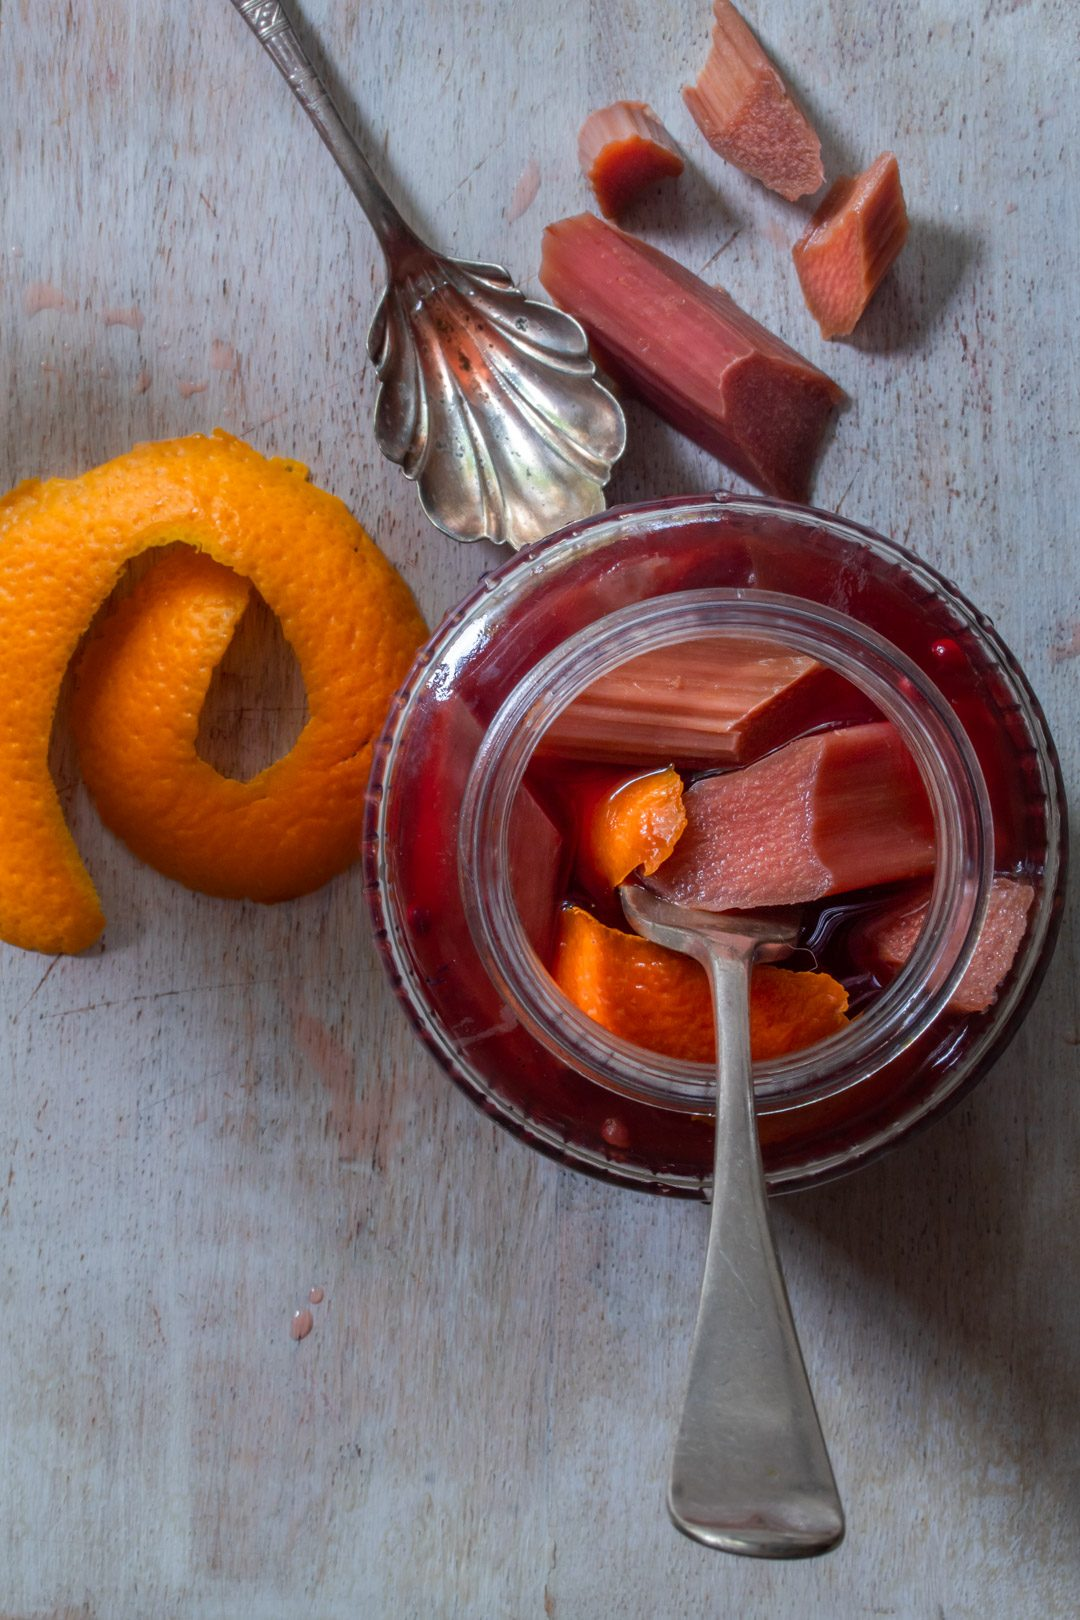 Rhubarb quick pickle with cinnamon myrtle, ginger, pink pepper & orange: with orange twist